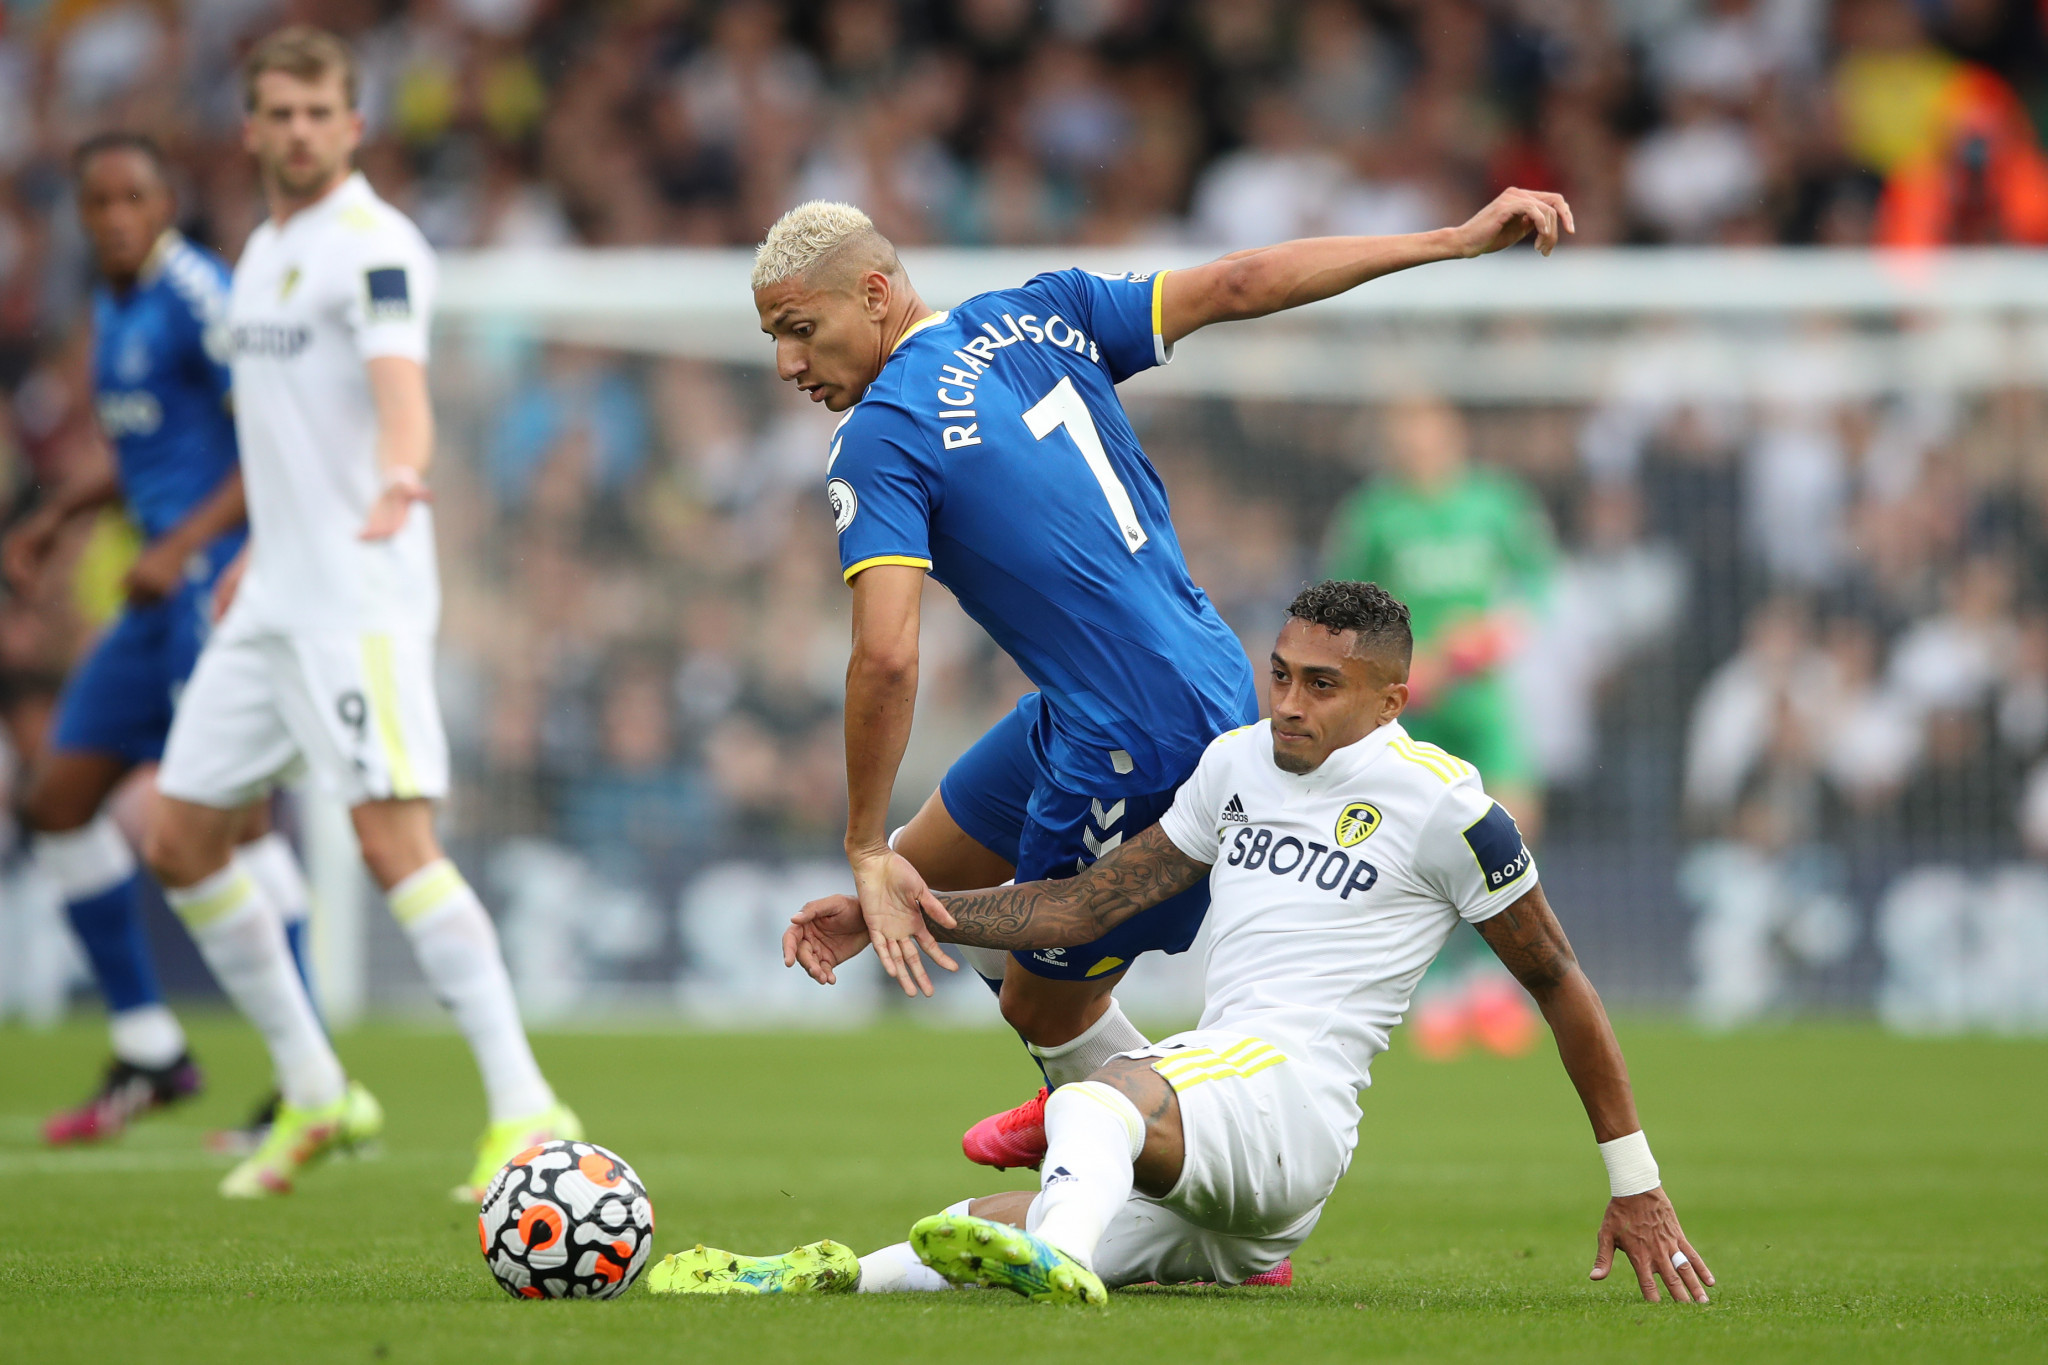 Leeds United's and Brazil's Raphinha, right, had been set to miss out on this weekend's match against Liverpool, although no complaint was made against his compatriot Richarlison, centre, of Everton ©Getty Images